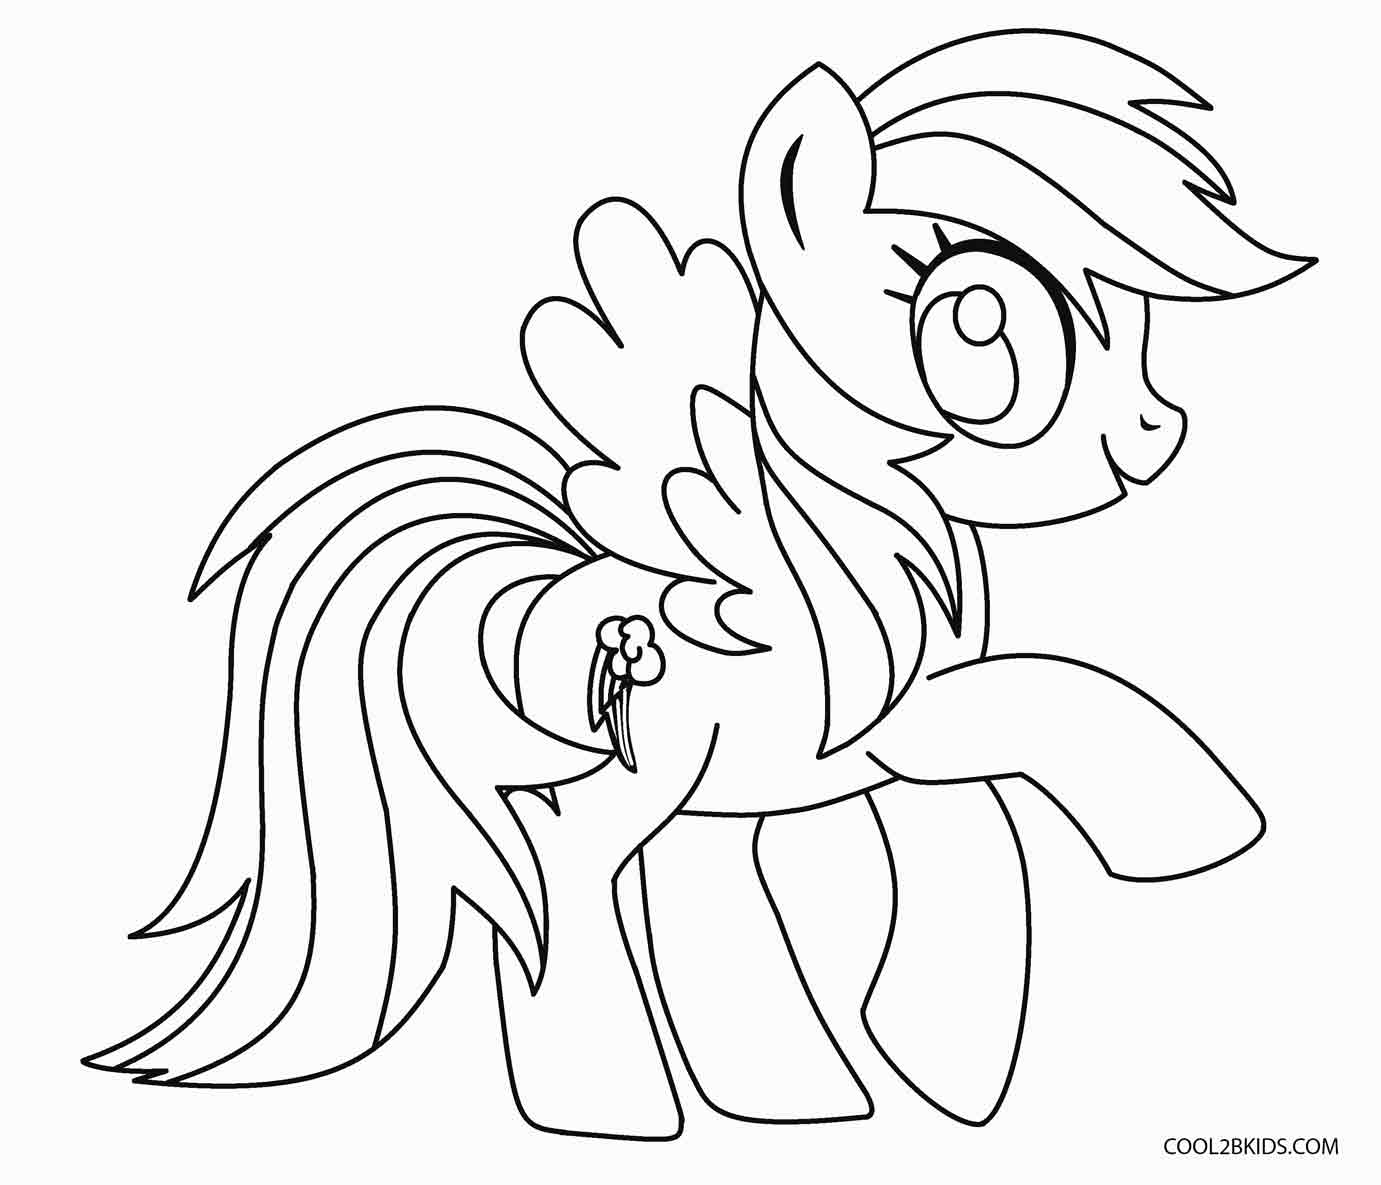 mlp coloring book my little pony 6 coloringcolorcom mlp coloring book